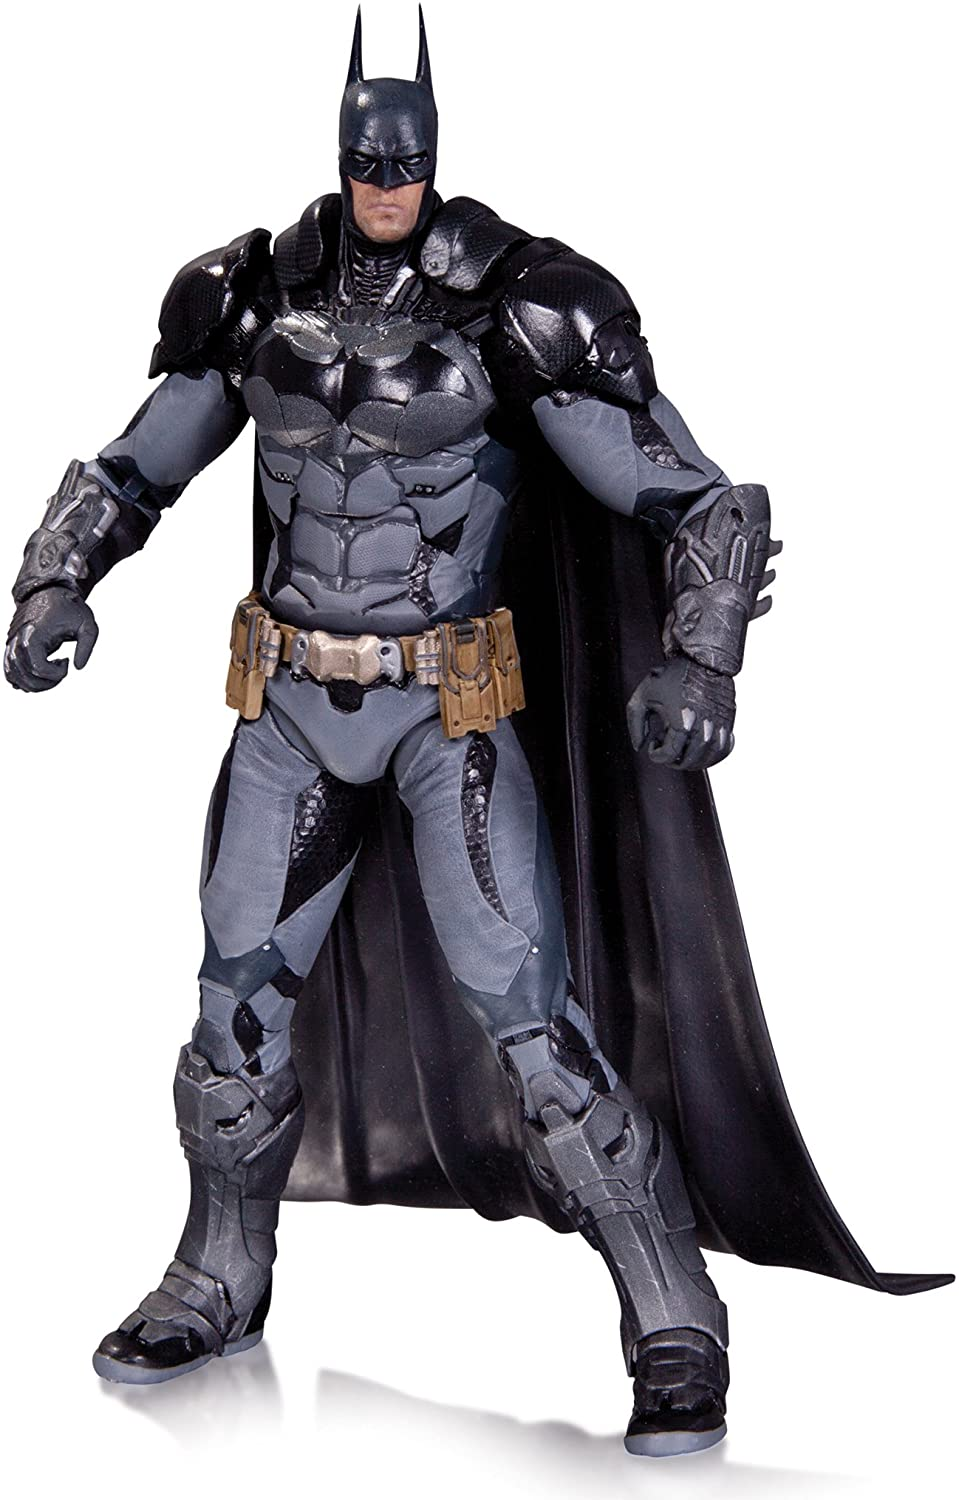 Arkham Knight Batman Series Action Figure Toy Gift Collectibles New in box